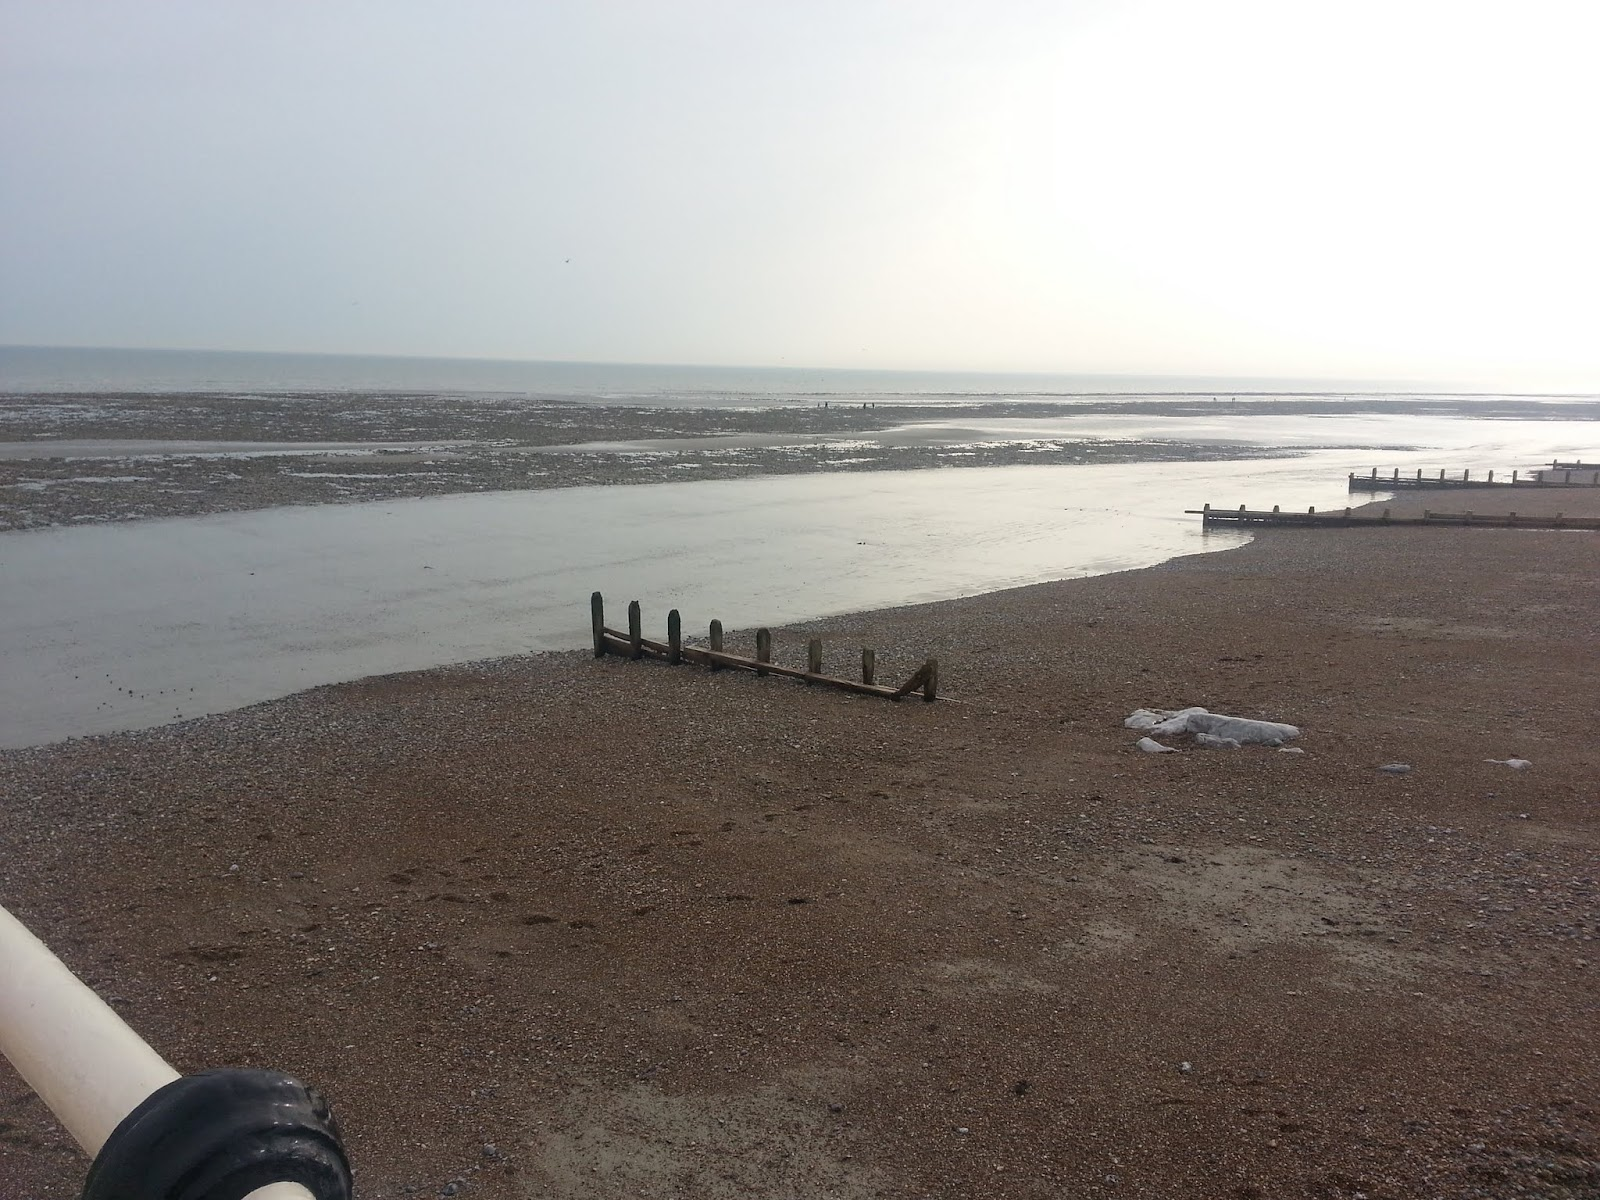 20140330 164942 1 View from Worthing Pier at low tide